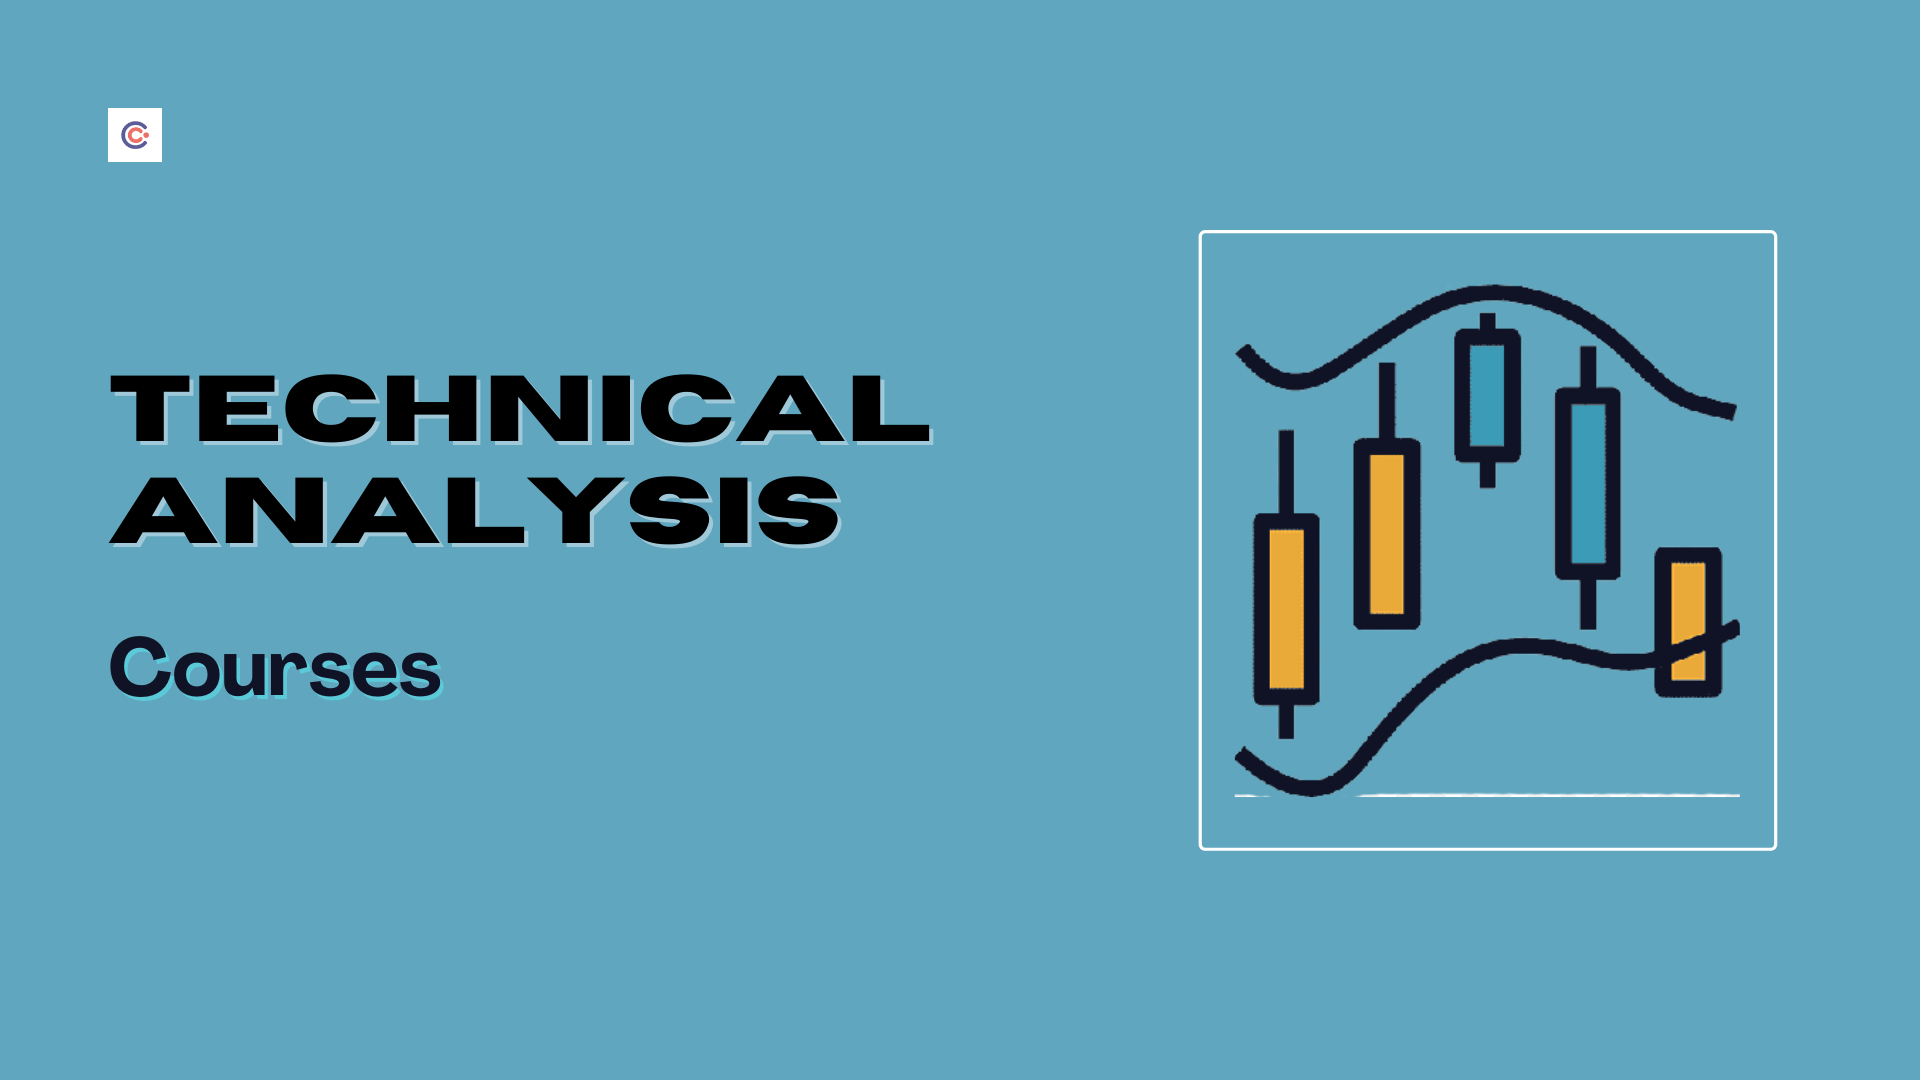 6 Best Technical Analysis Courses - Learn Technical Analysis Online